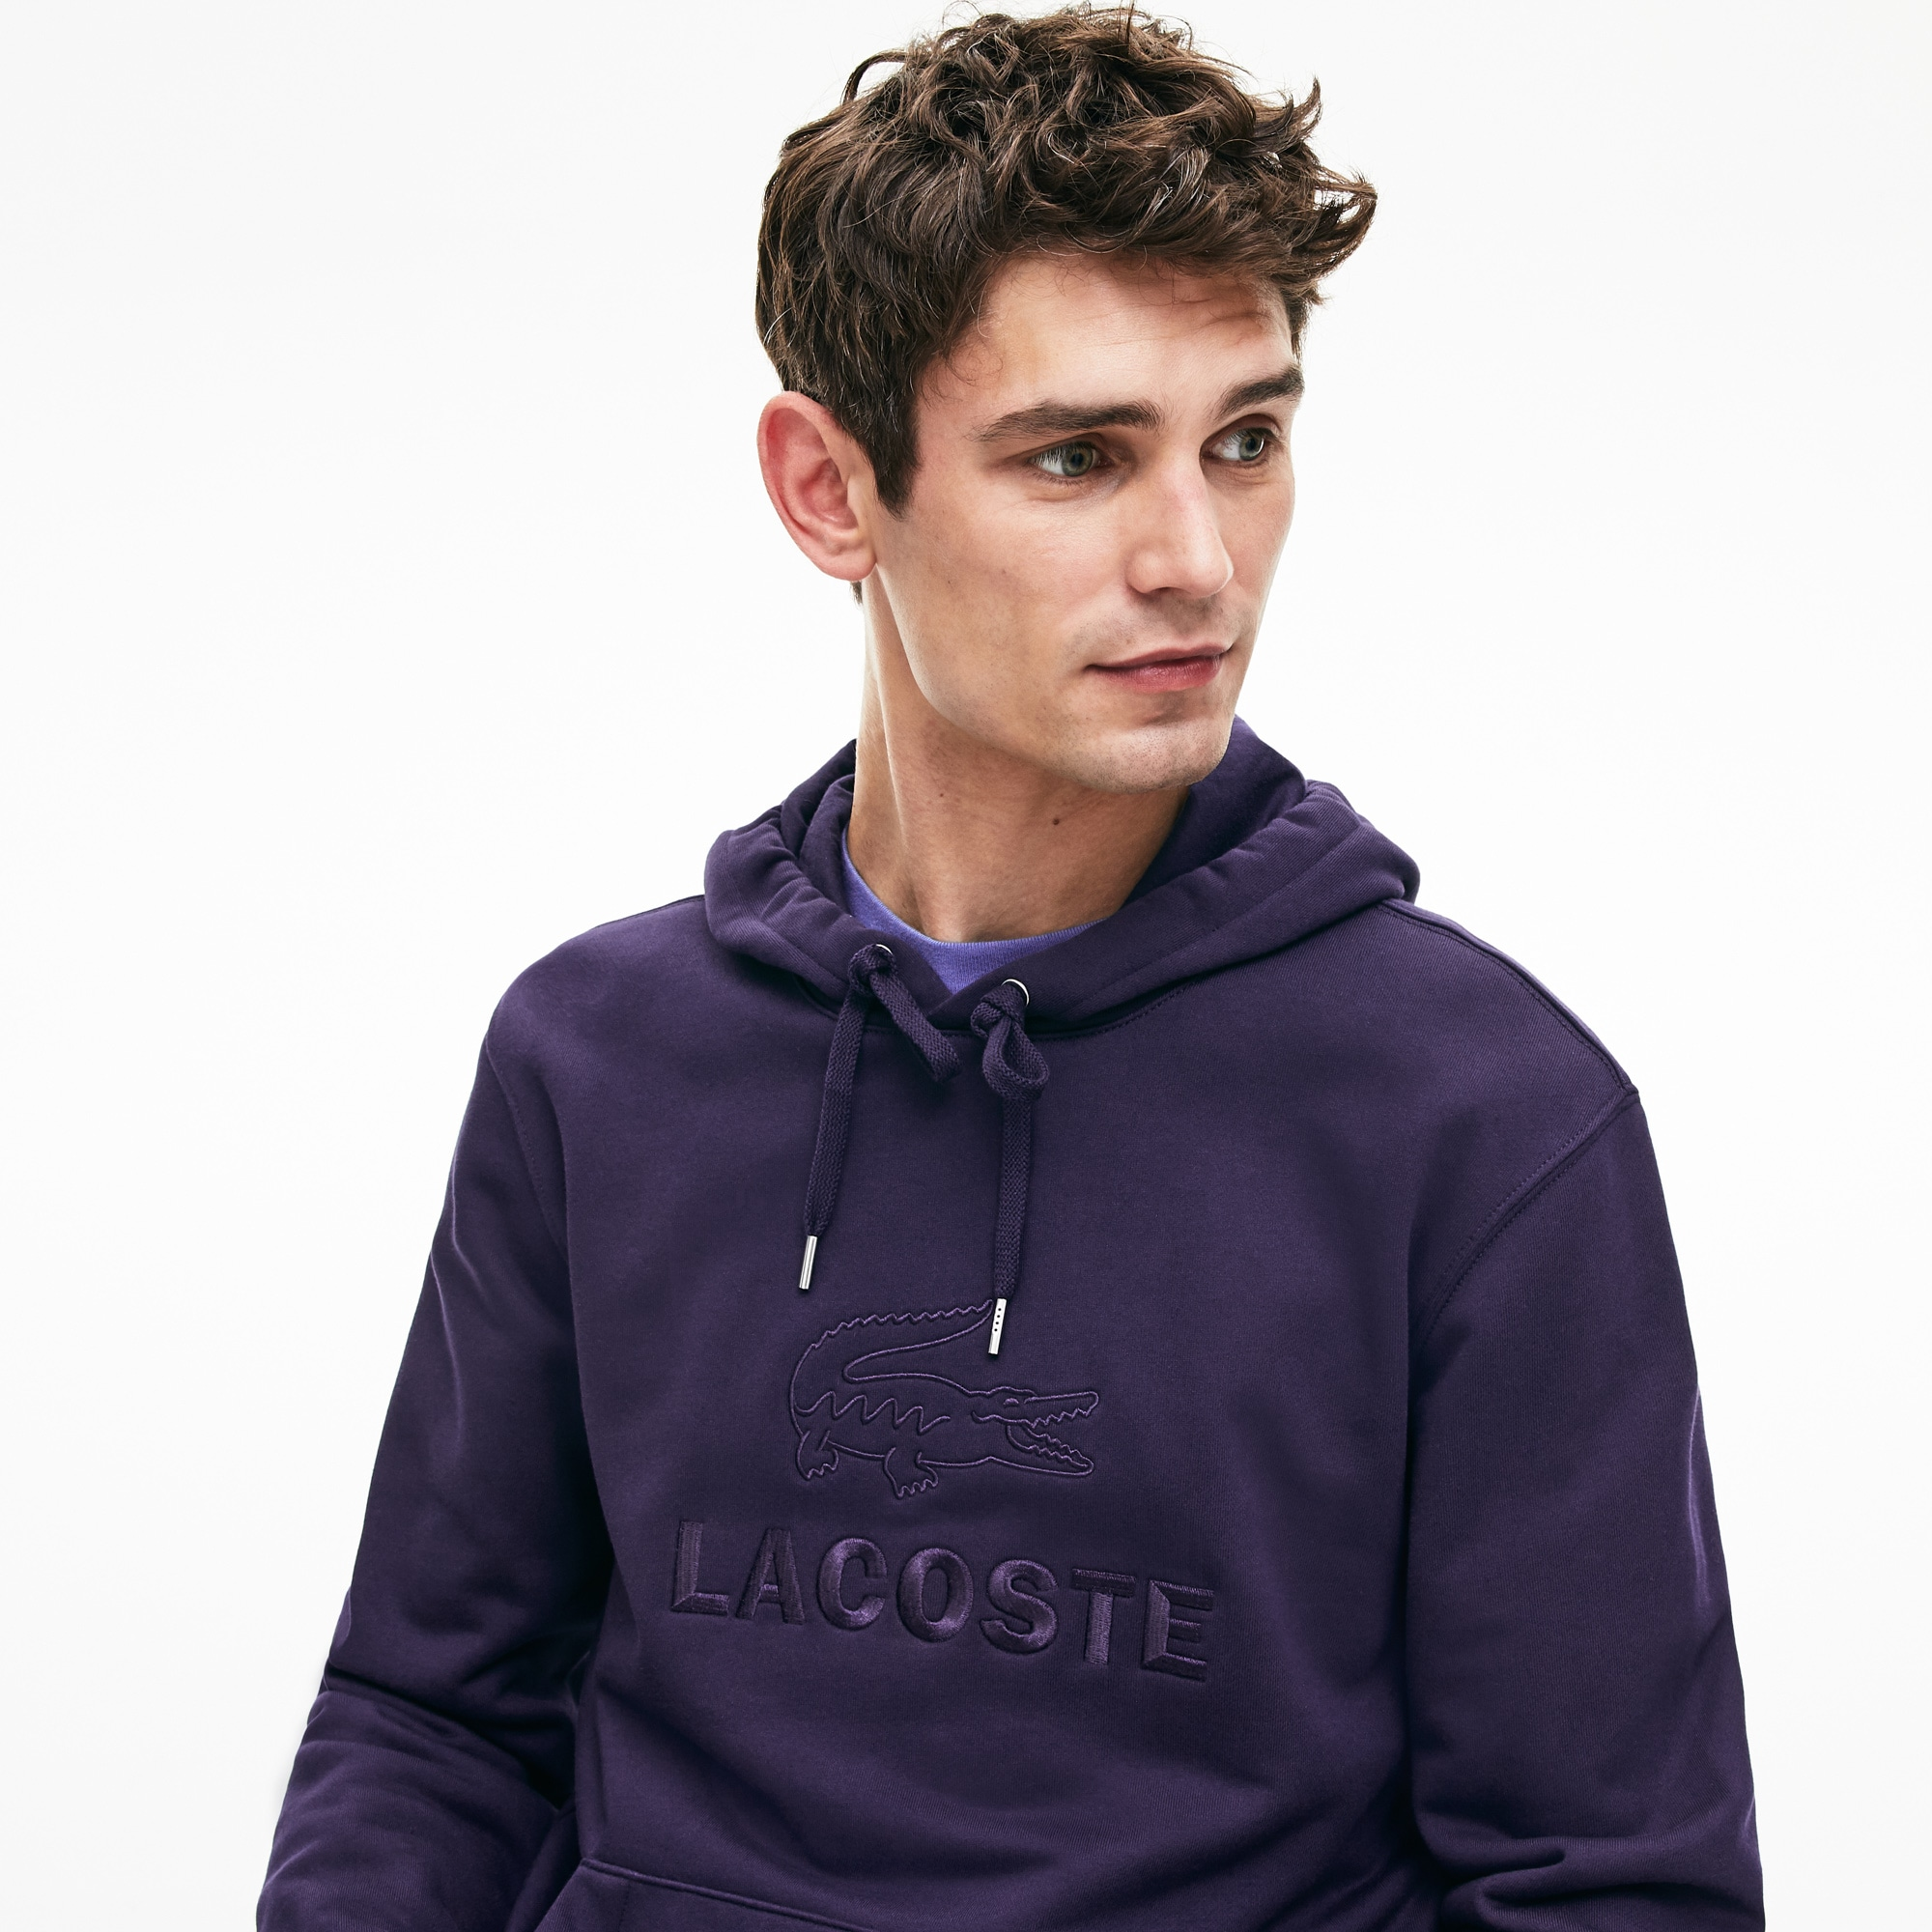 Herren-Sweatshirt Fleece mit Stickereiund Kängurutasche